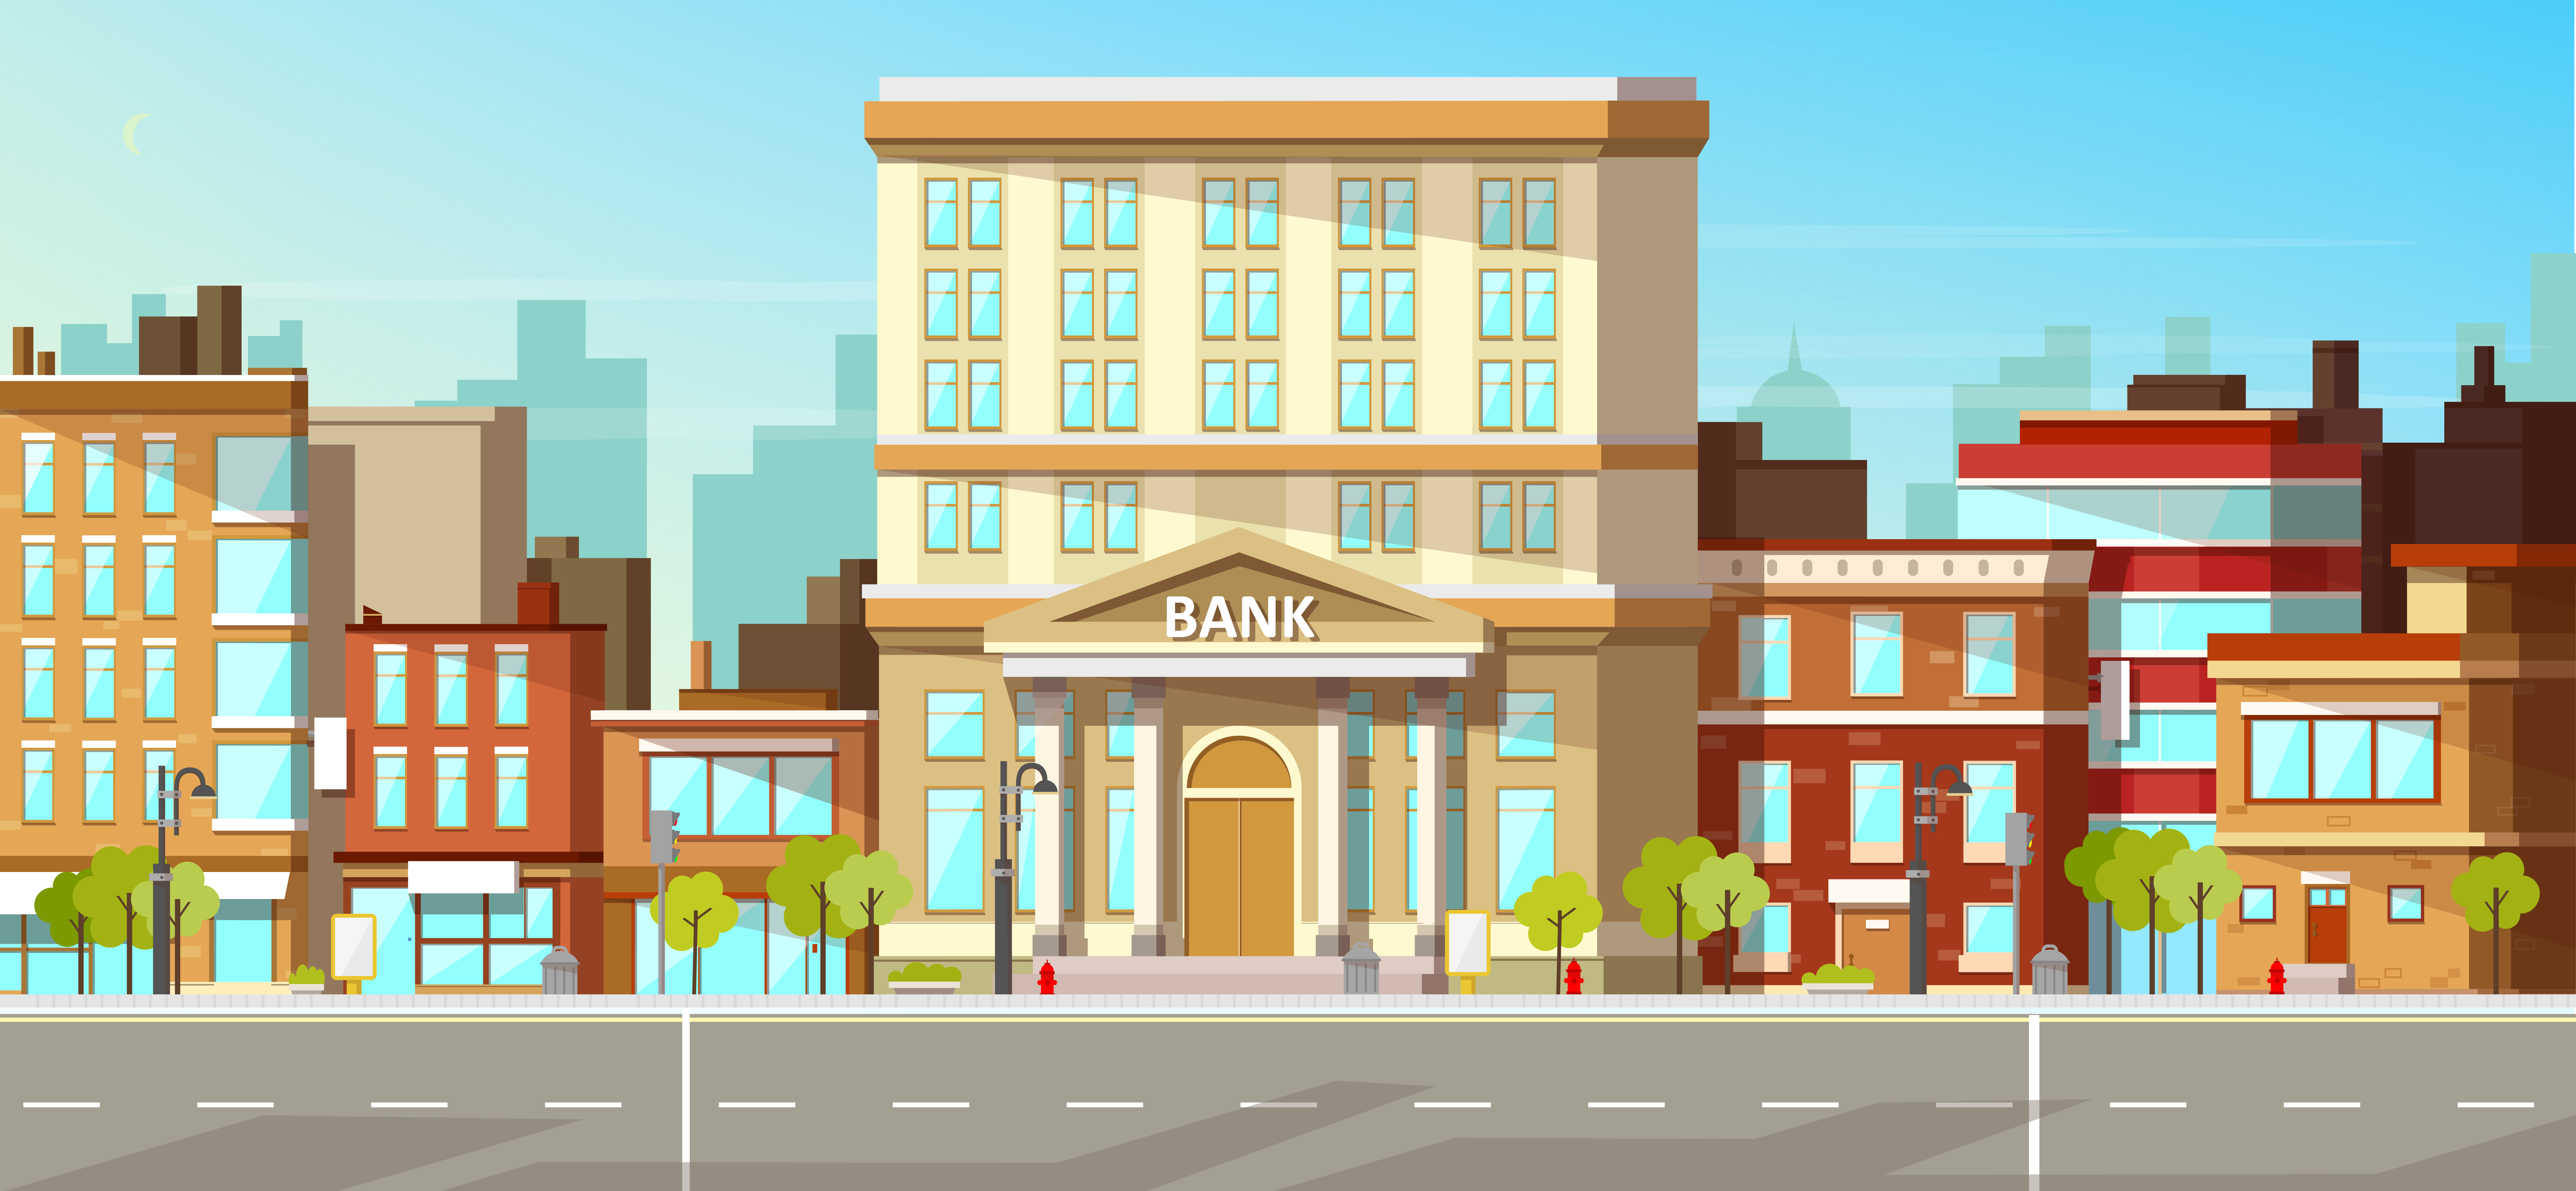 The Evolution of the Bank on the Street Corner